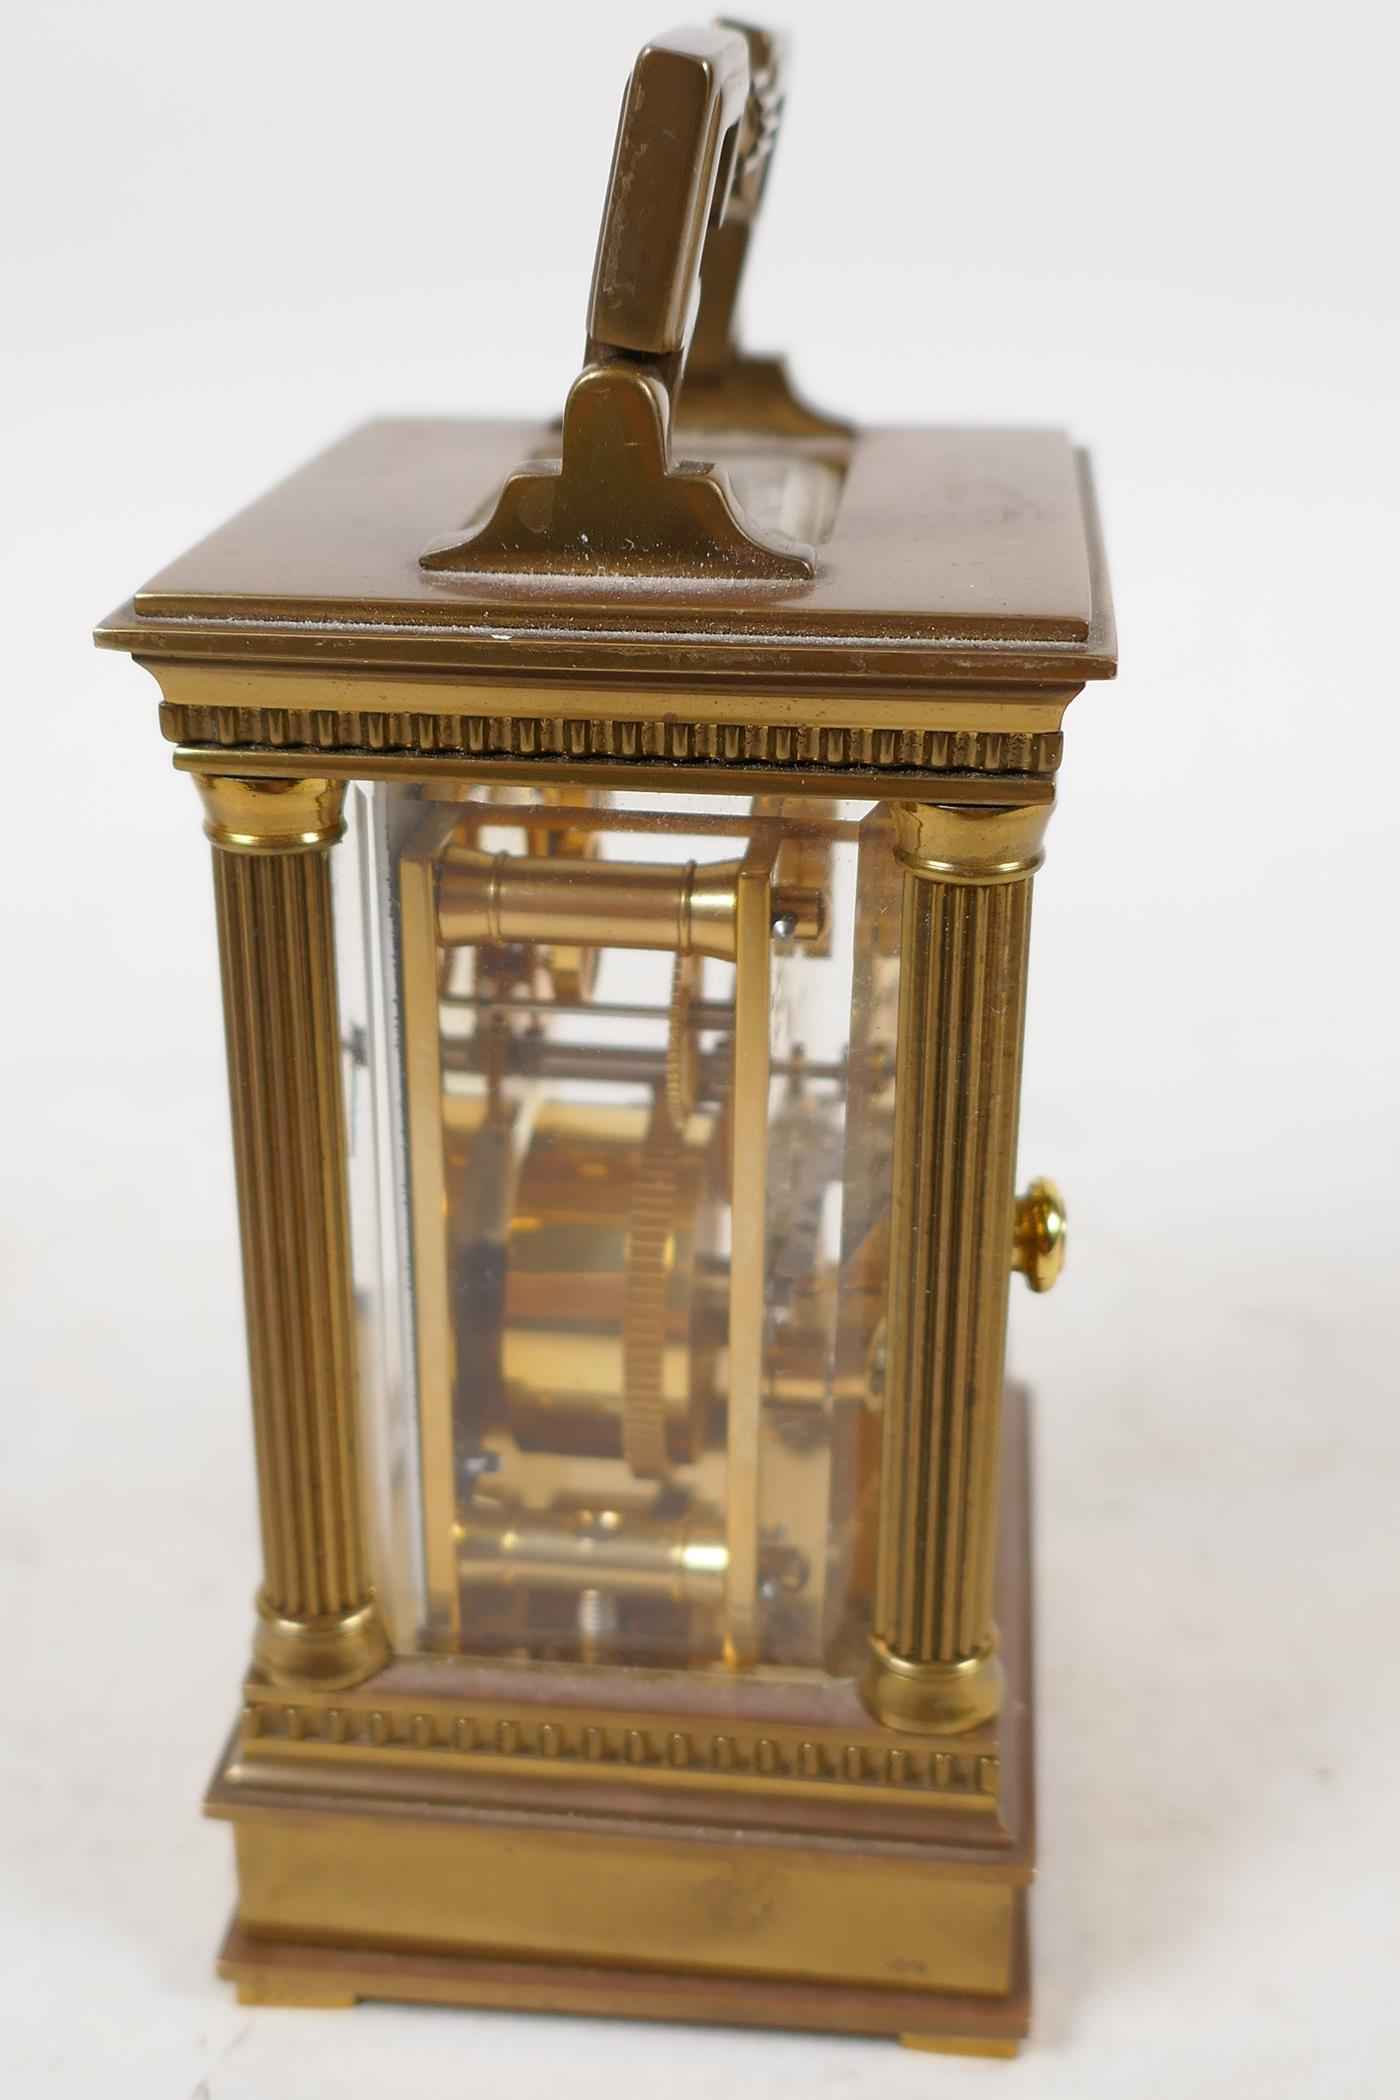 A Swiss made carriage clock in brass case with reeded columns, white enamel dial and Roman numerals, - Image 2 of 4